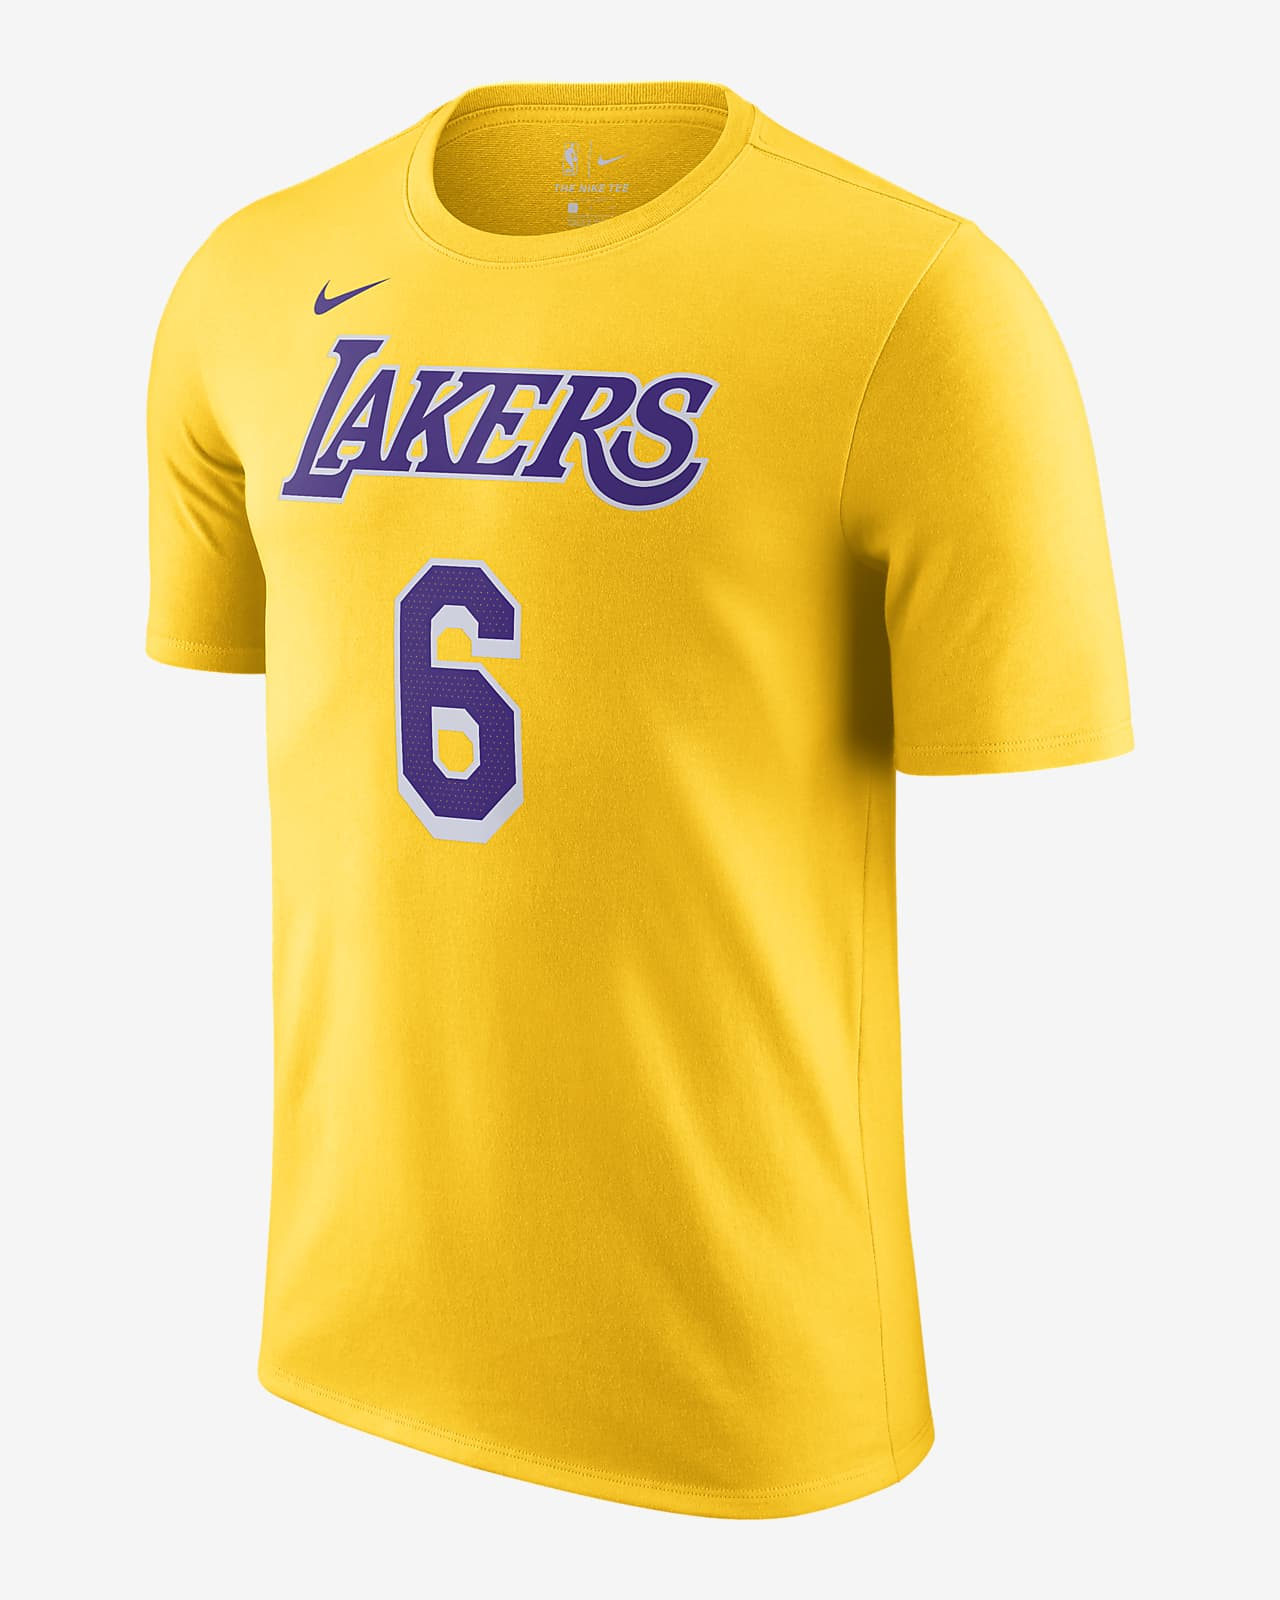 Tee-shirt Nike NBA Los Angeles Lakers pour Homme